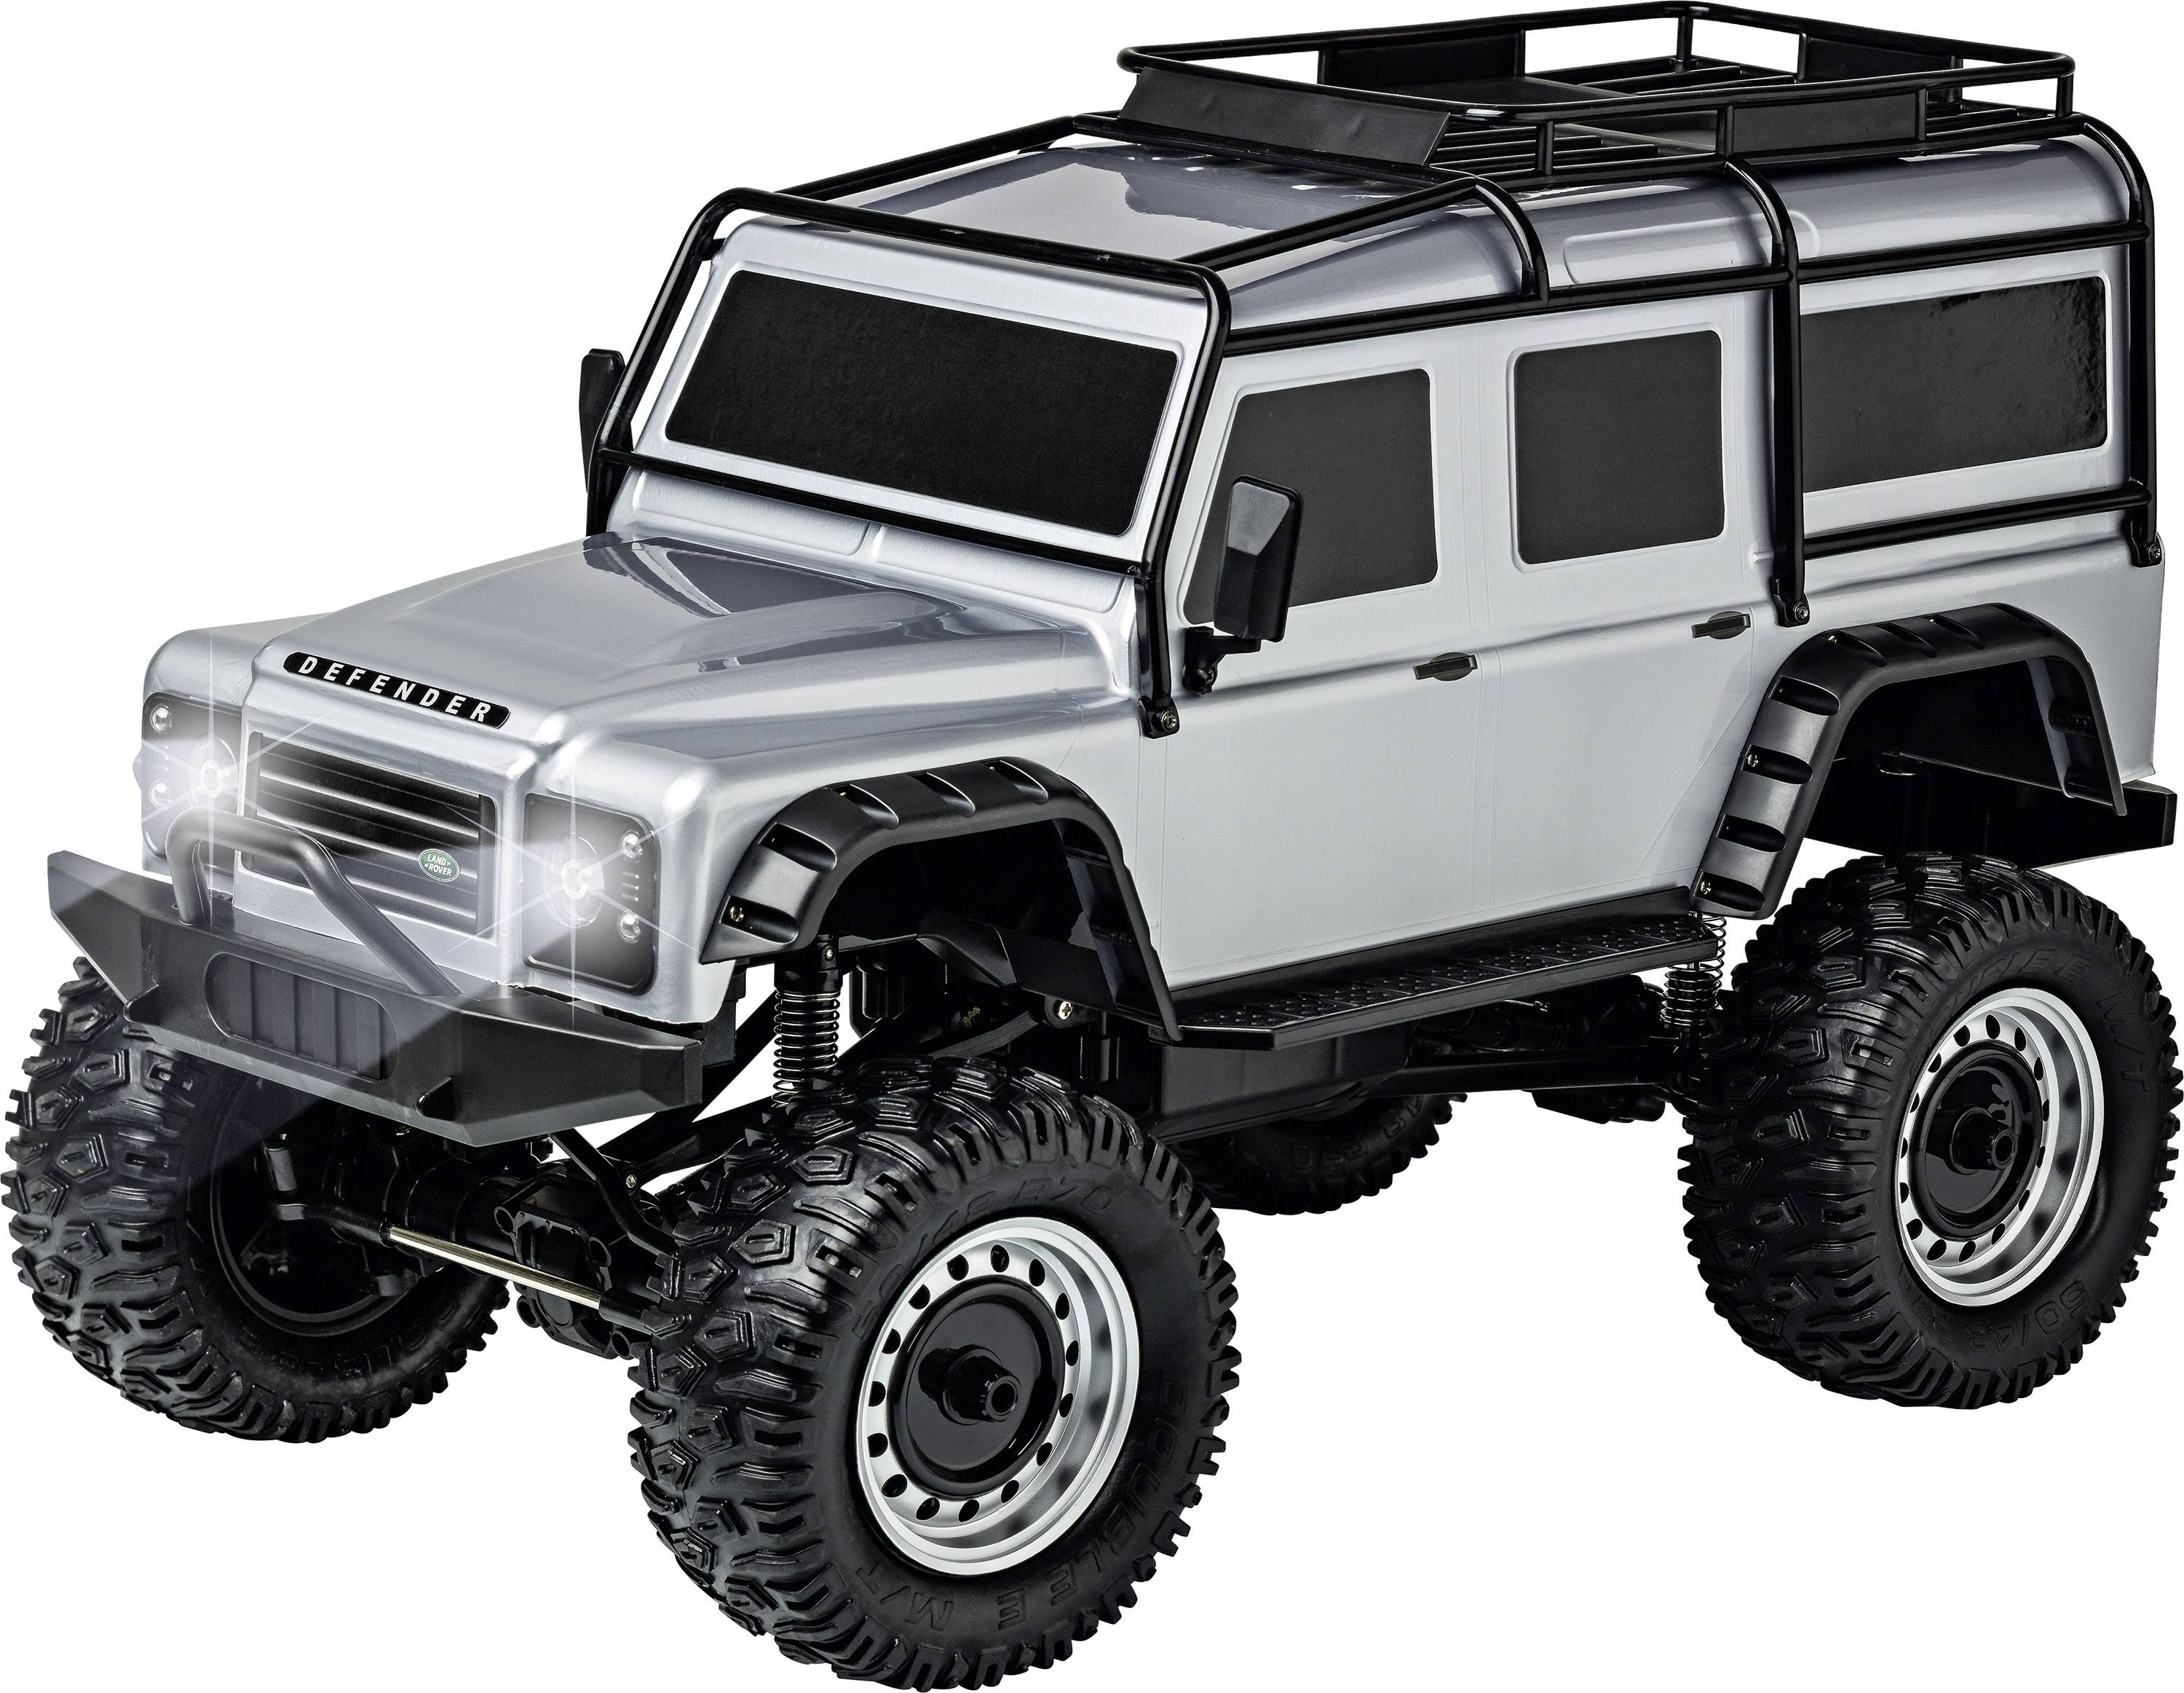 LAND ROVER DEFENDER Rock Crawler 4WD 1:8, stříbrná, 2,4 Ghz, LED